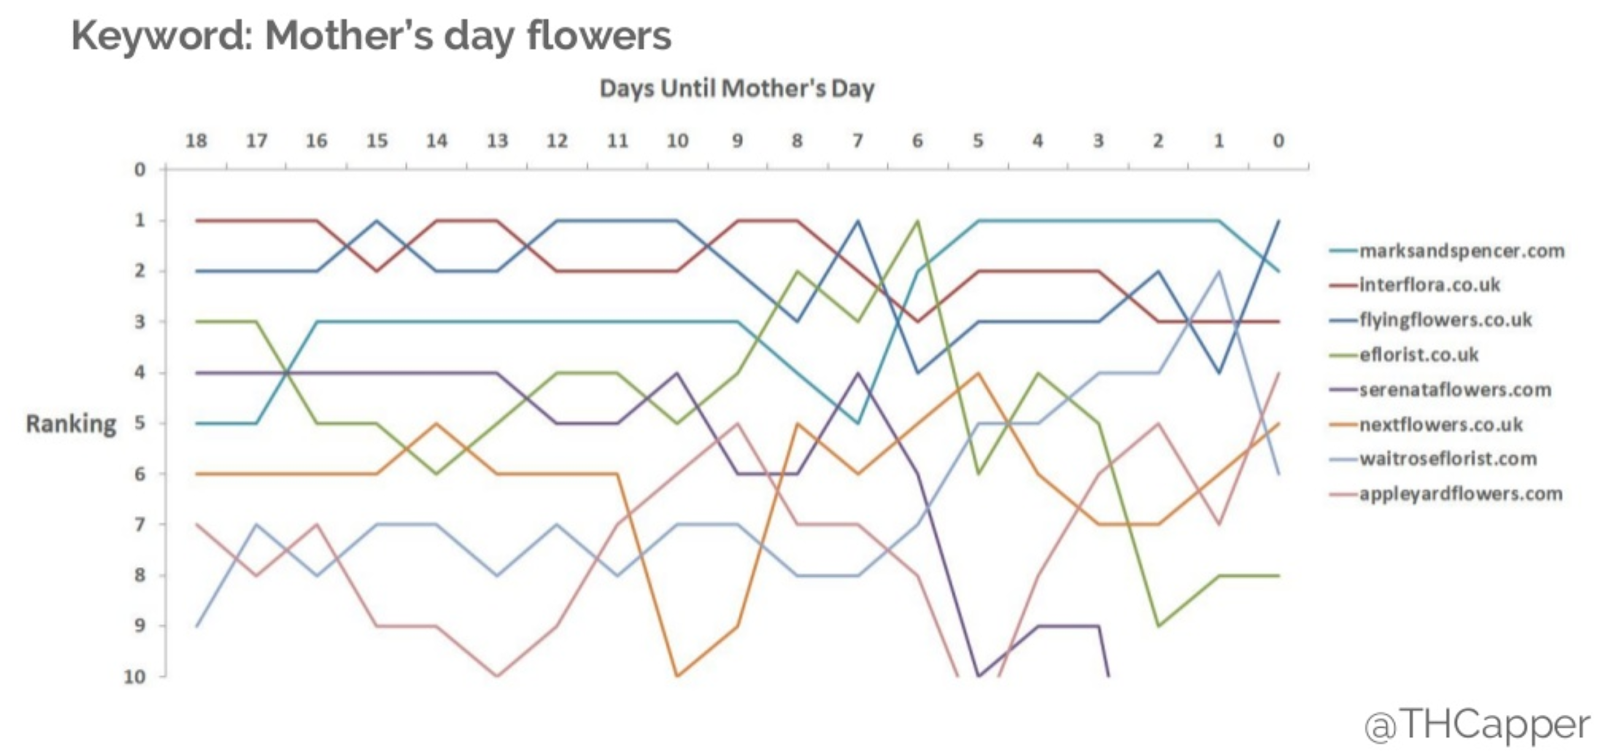 mothersday rankings